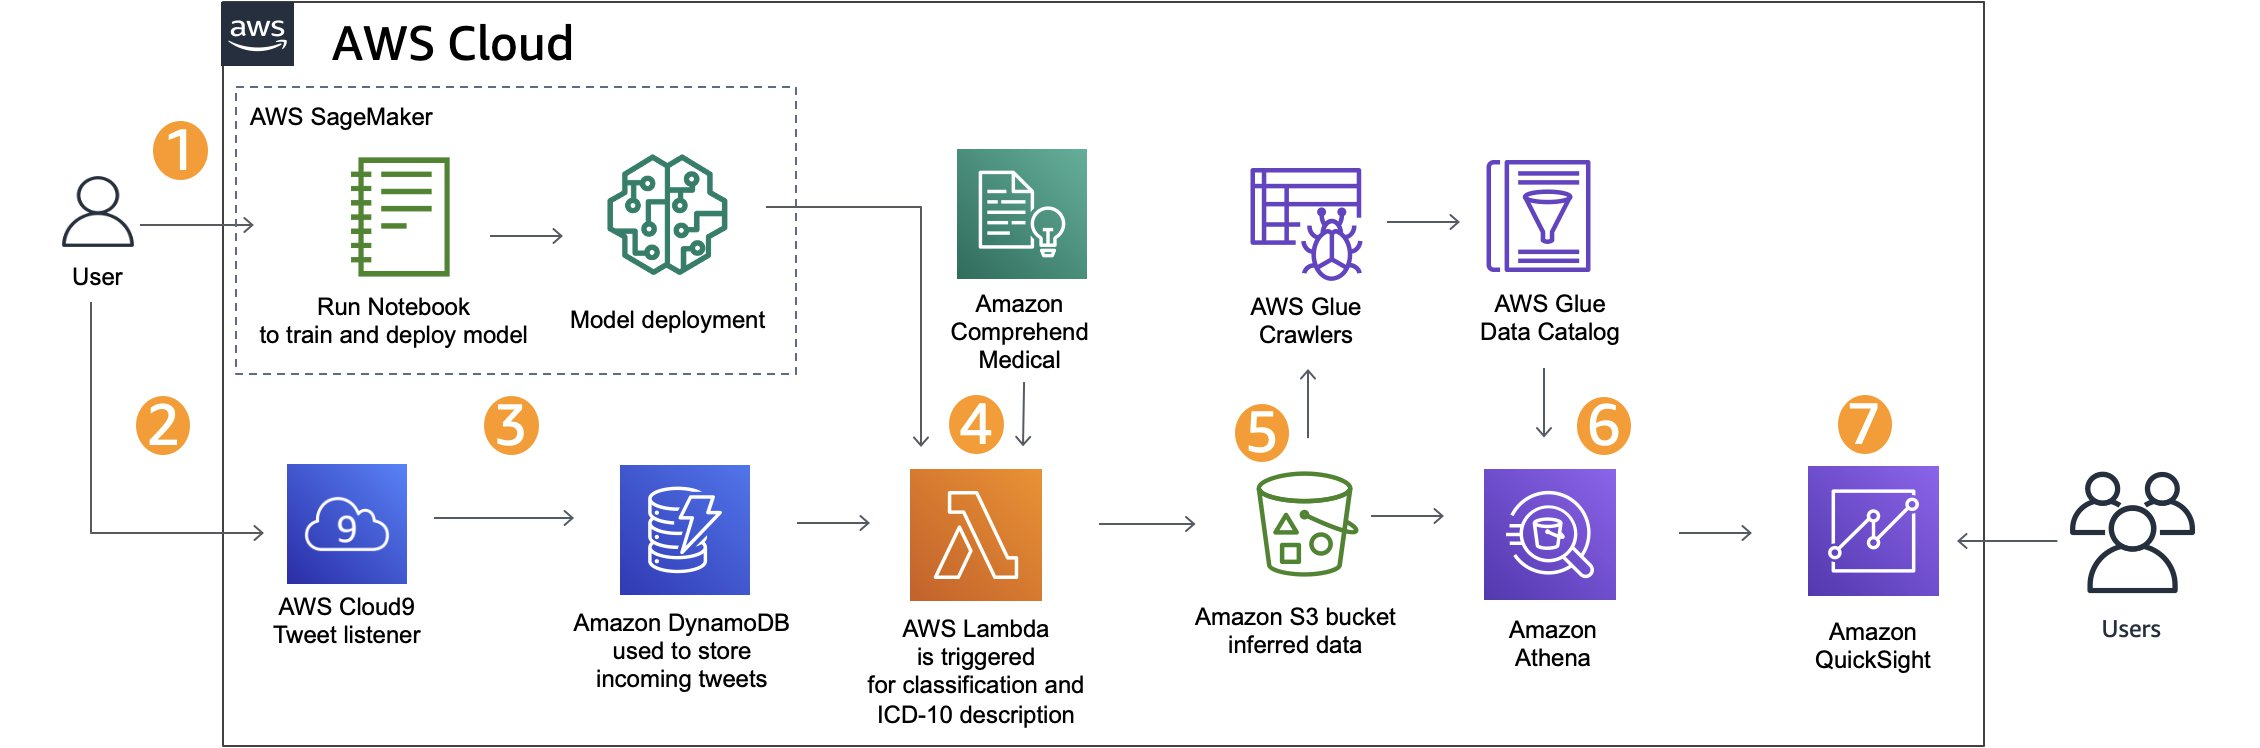 Build a system for catching adverse events in real-time using Amazon SageMaker and Amazon QuickSight